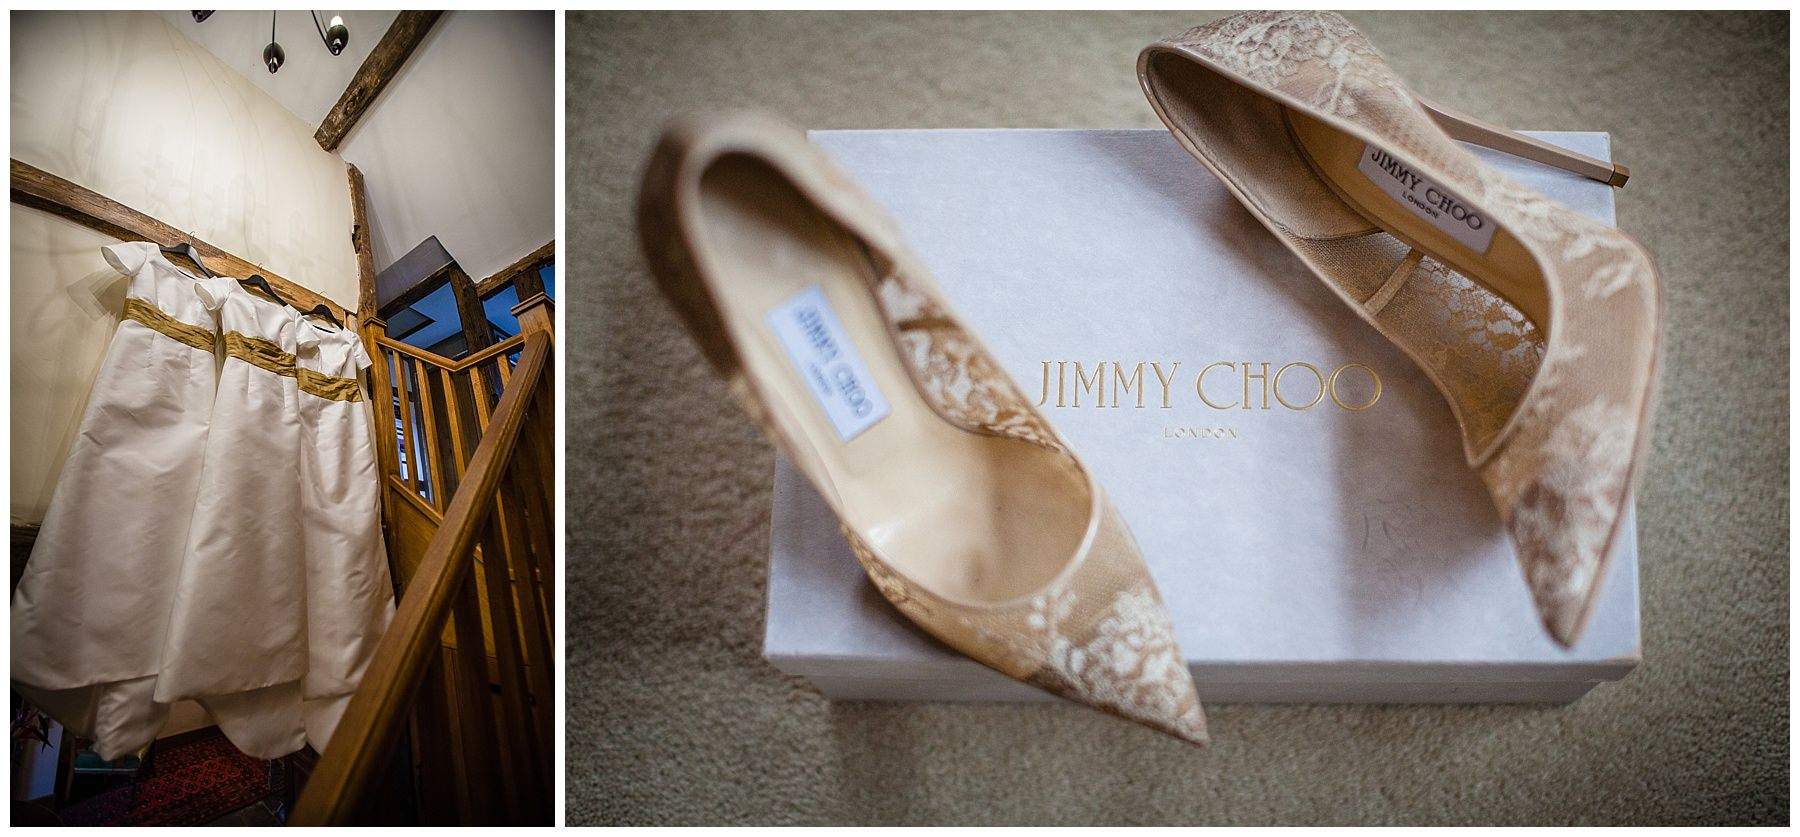 bespoke bridesmaids dresses hanging up and pair of jimmy choo shoes